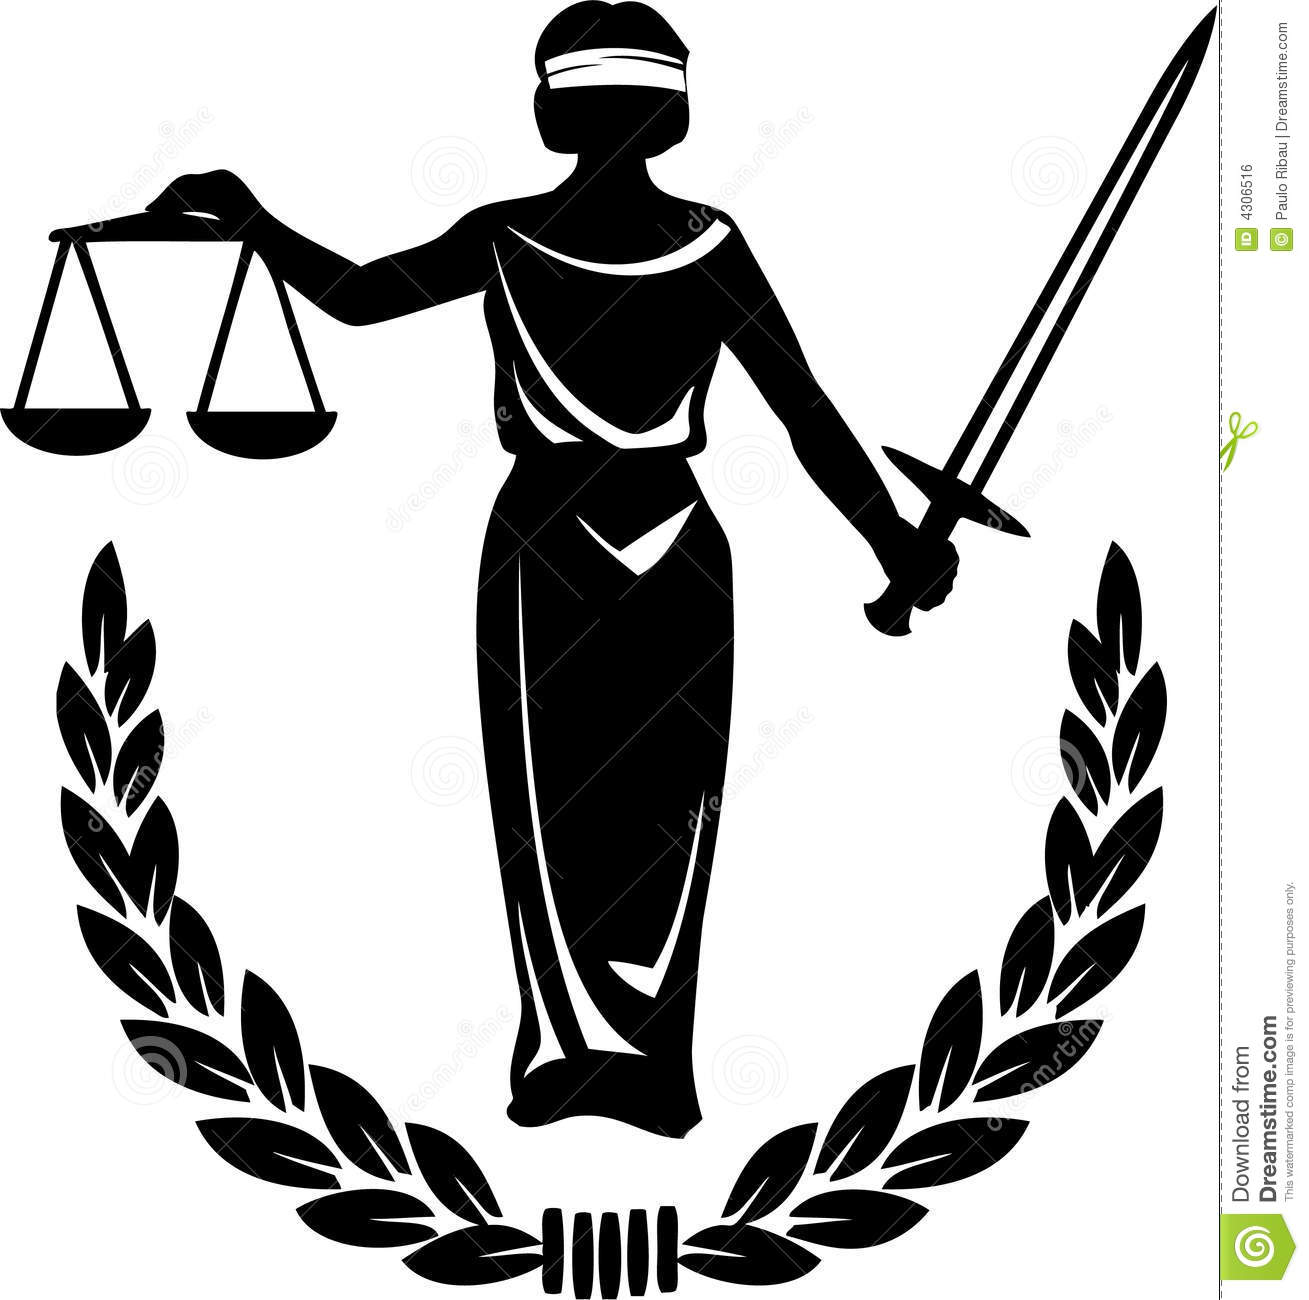 Illustration Of A Silhouette Holding The Scales Of Justice